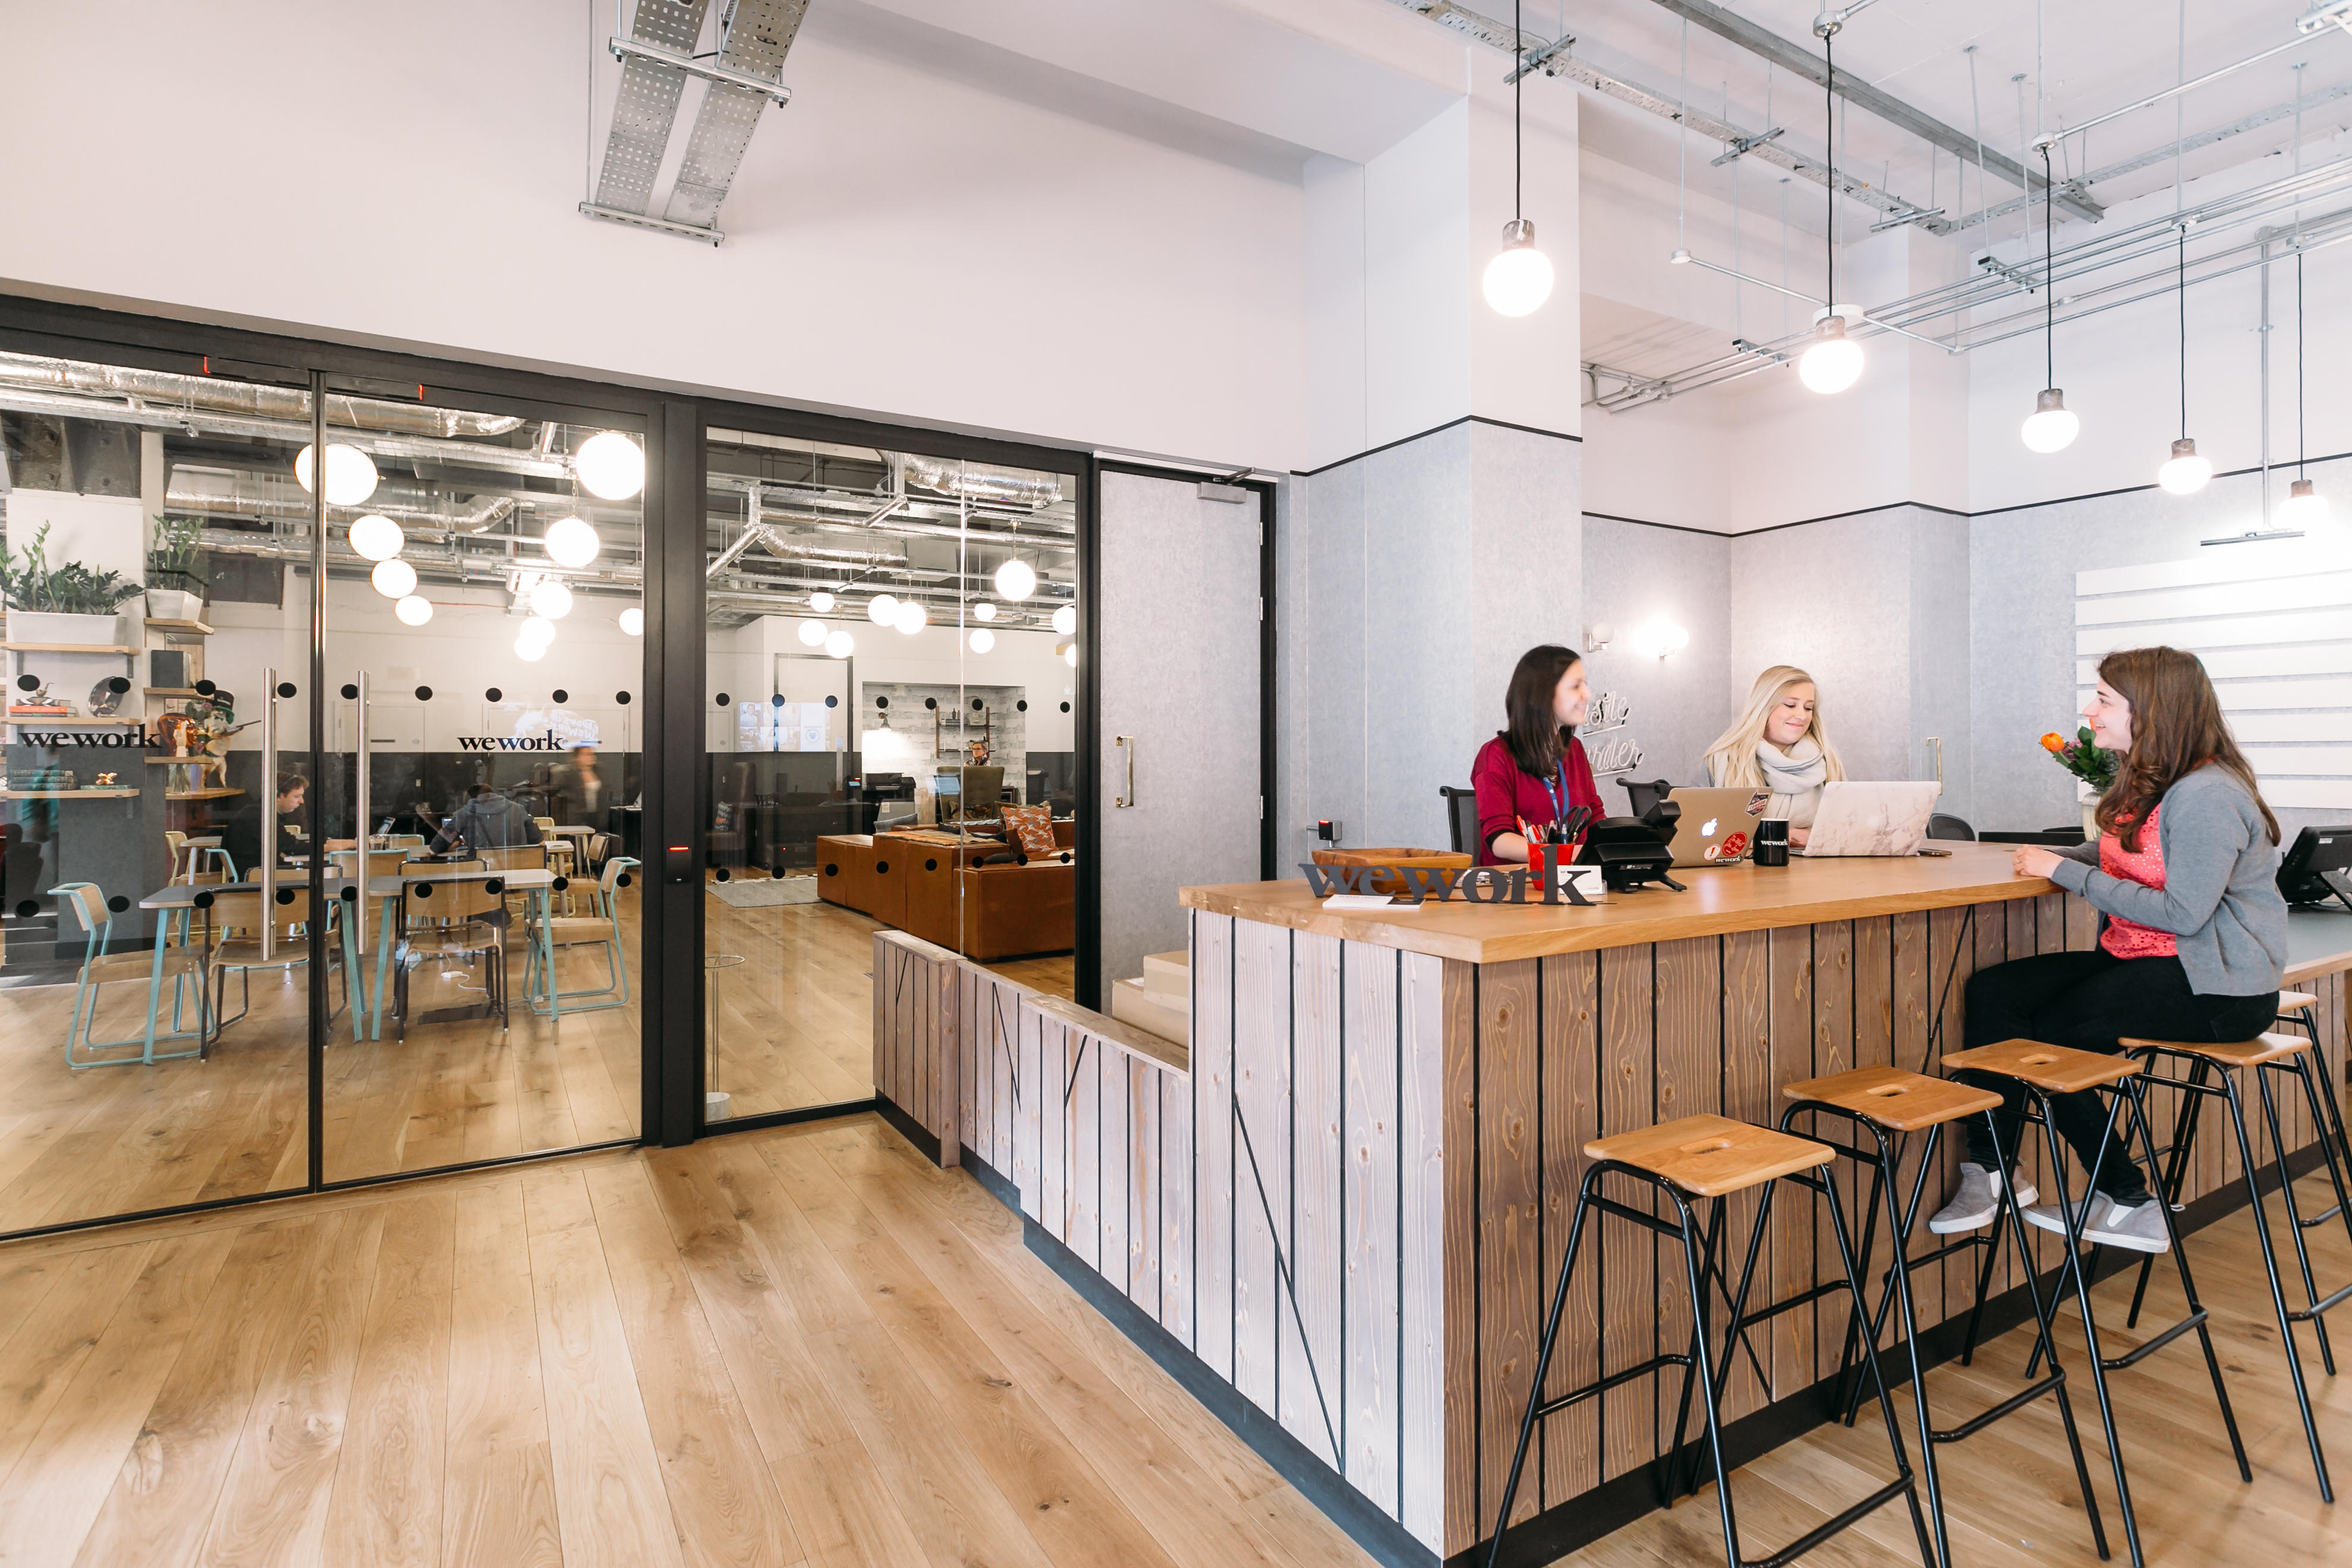 Example shown: Community Bar (Chancery Lane, London) WeWork 33 Queen St London 020 3695 7895